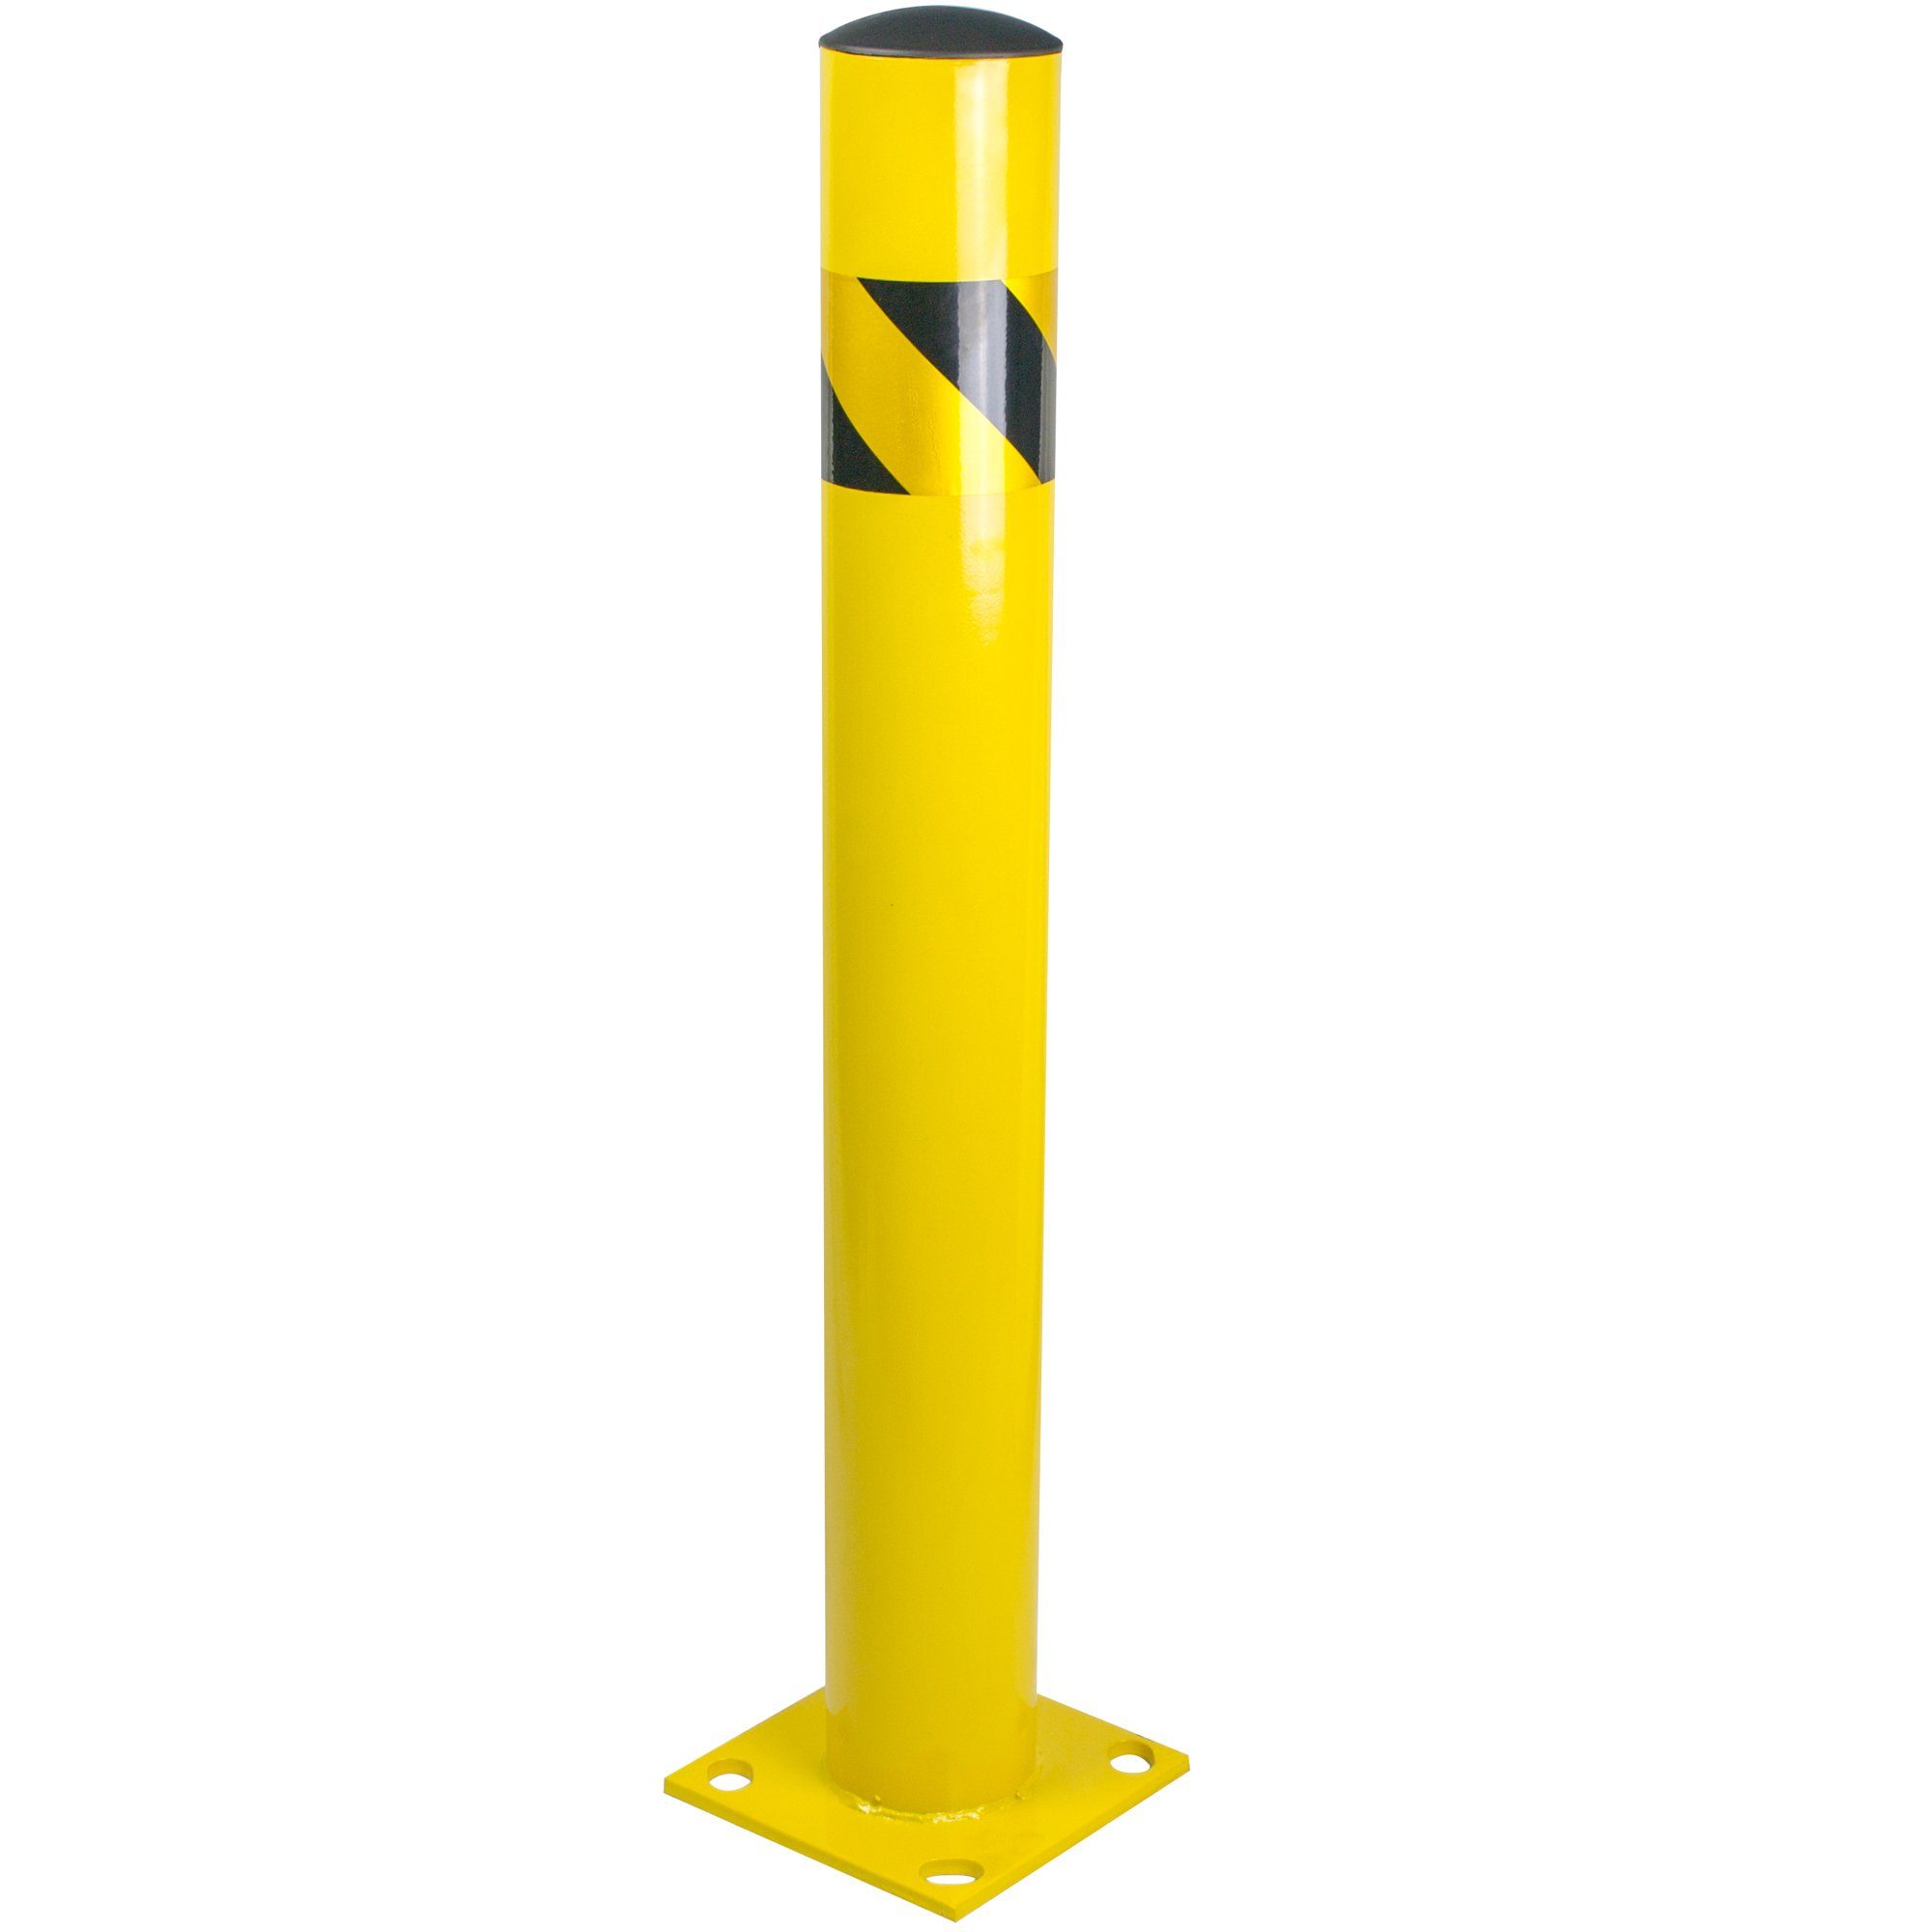 Bollard Post - Steel Safety Barrier Protection- Yellow Powder Coat 4.5'' Diameter 36'' Tall BW4536 by BUNKERWALL